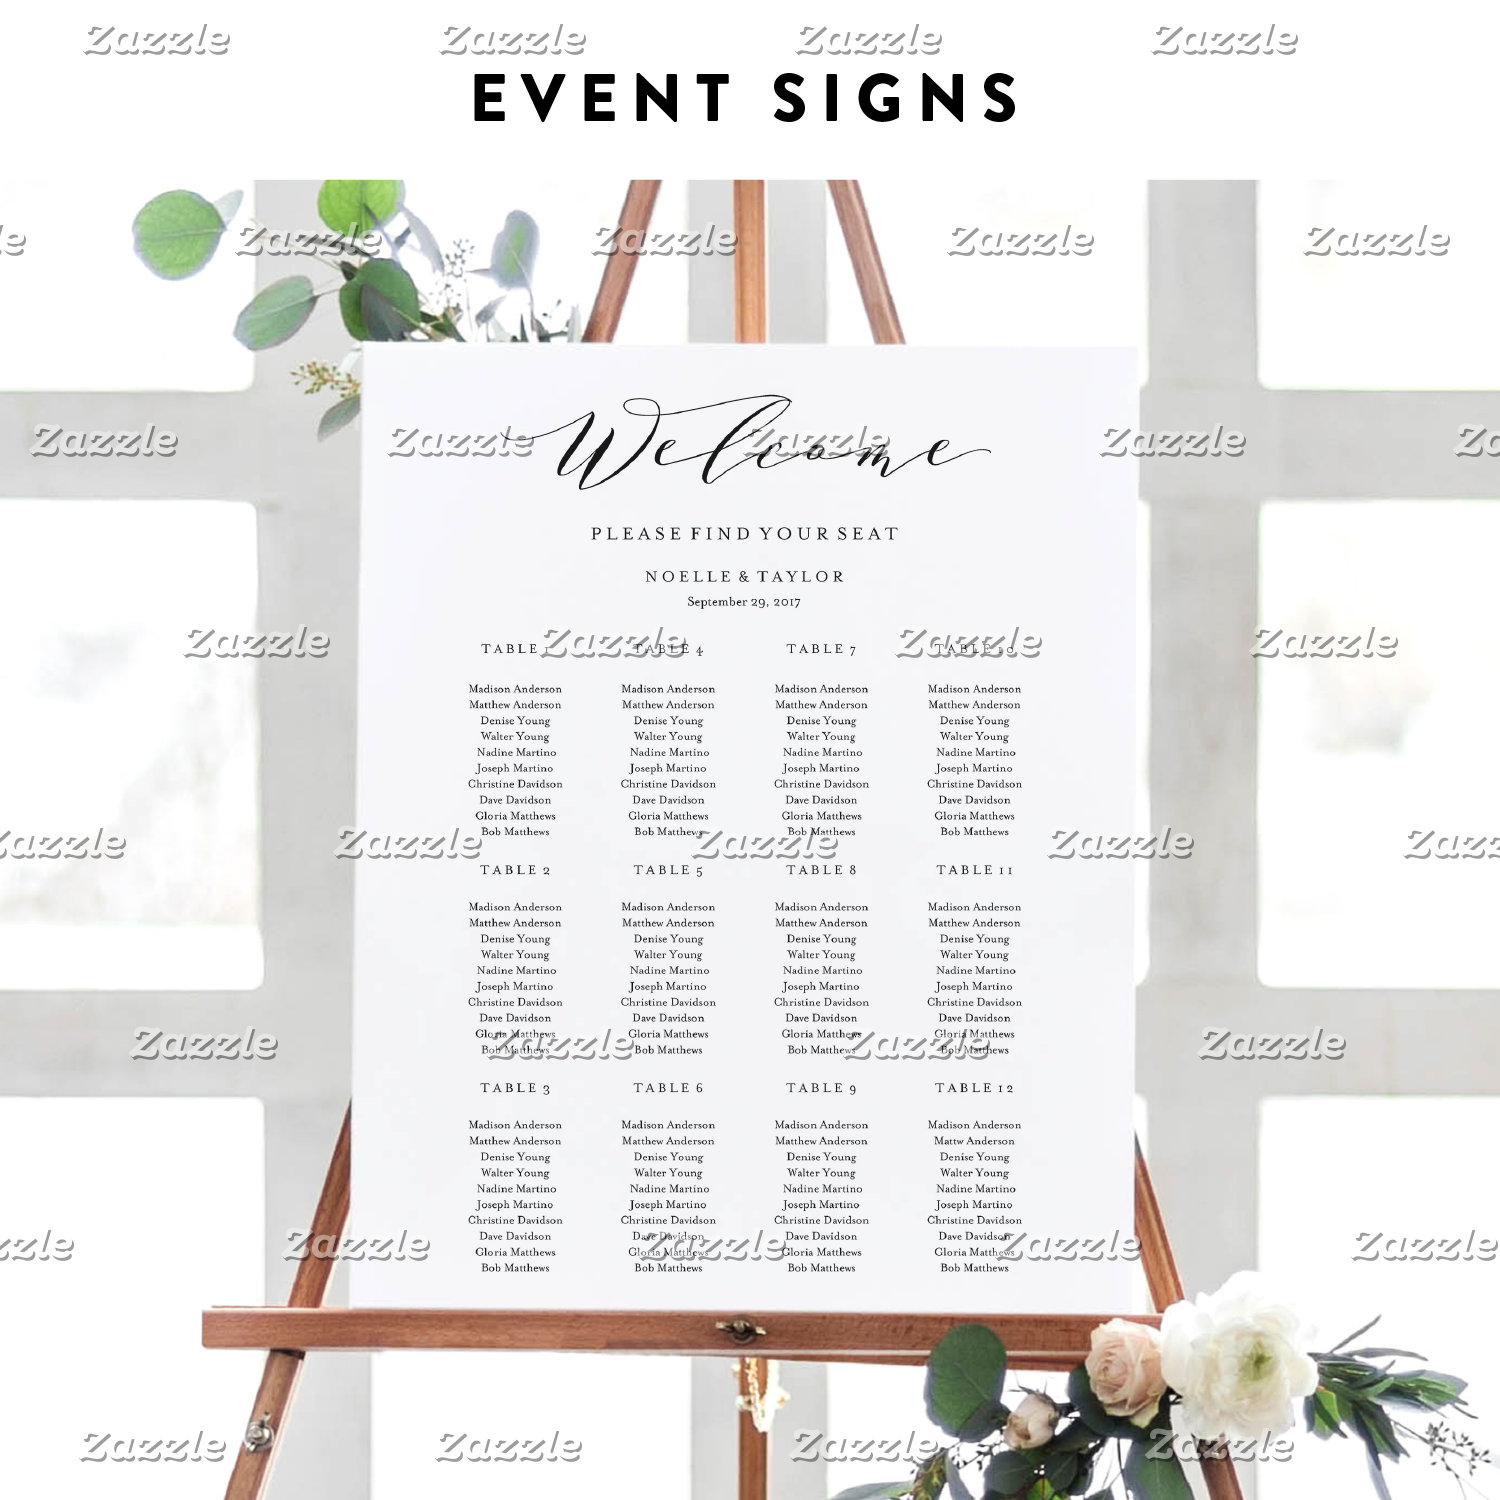 Event Signs